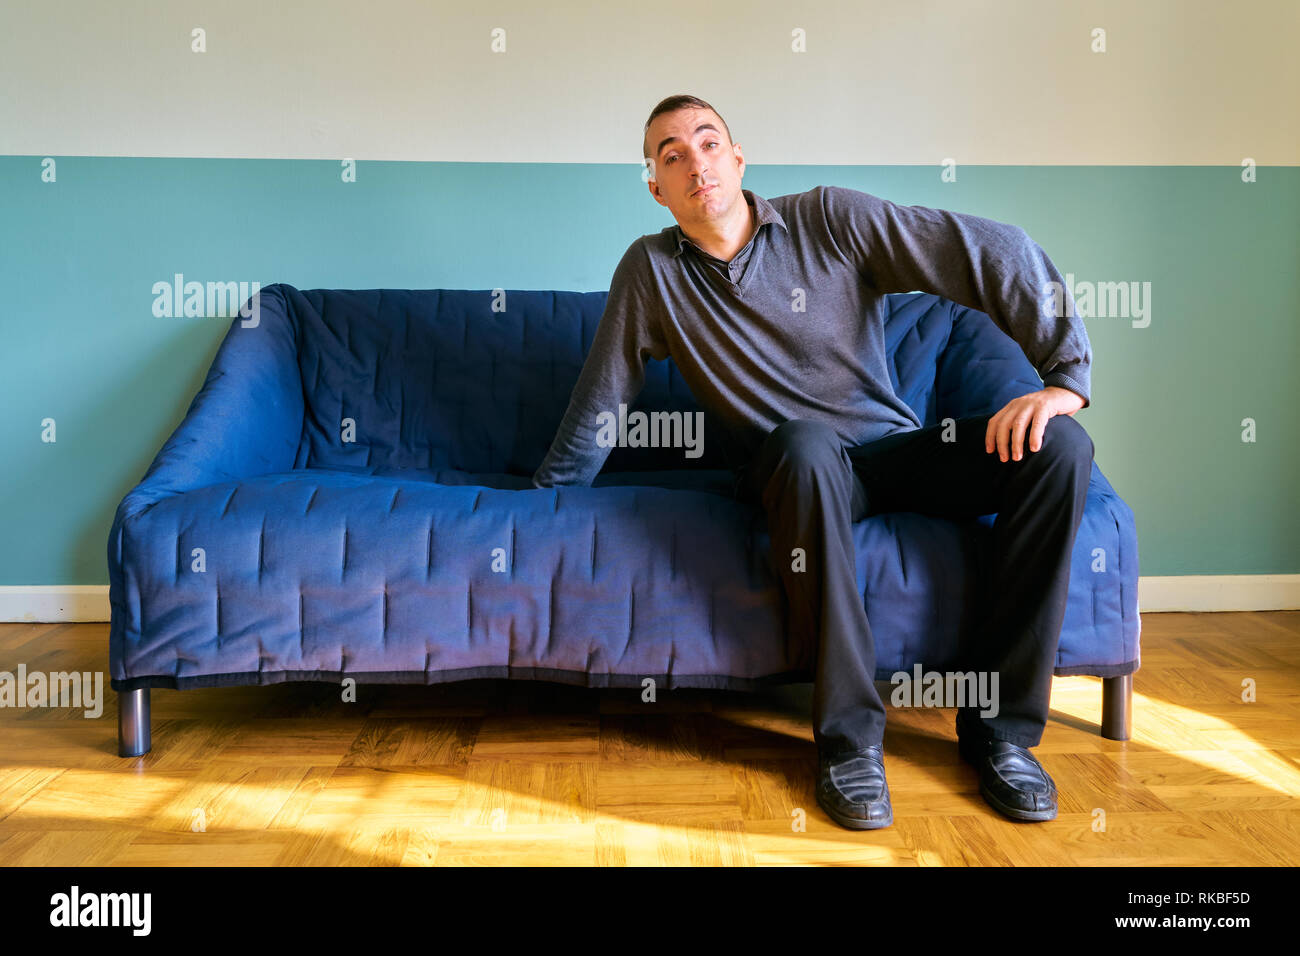 Handsome guy posing - attractive man waiting someone - Stock Image